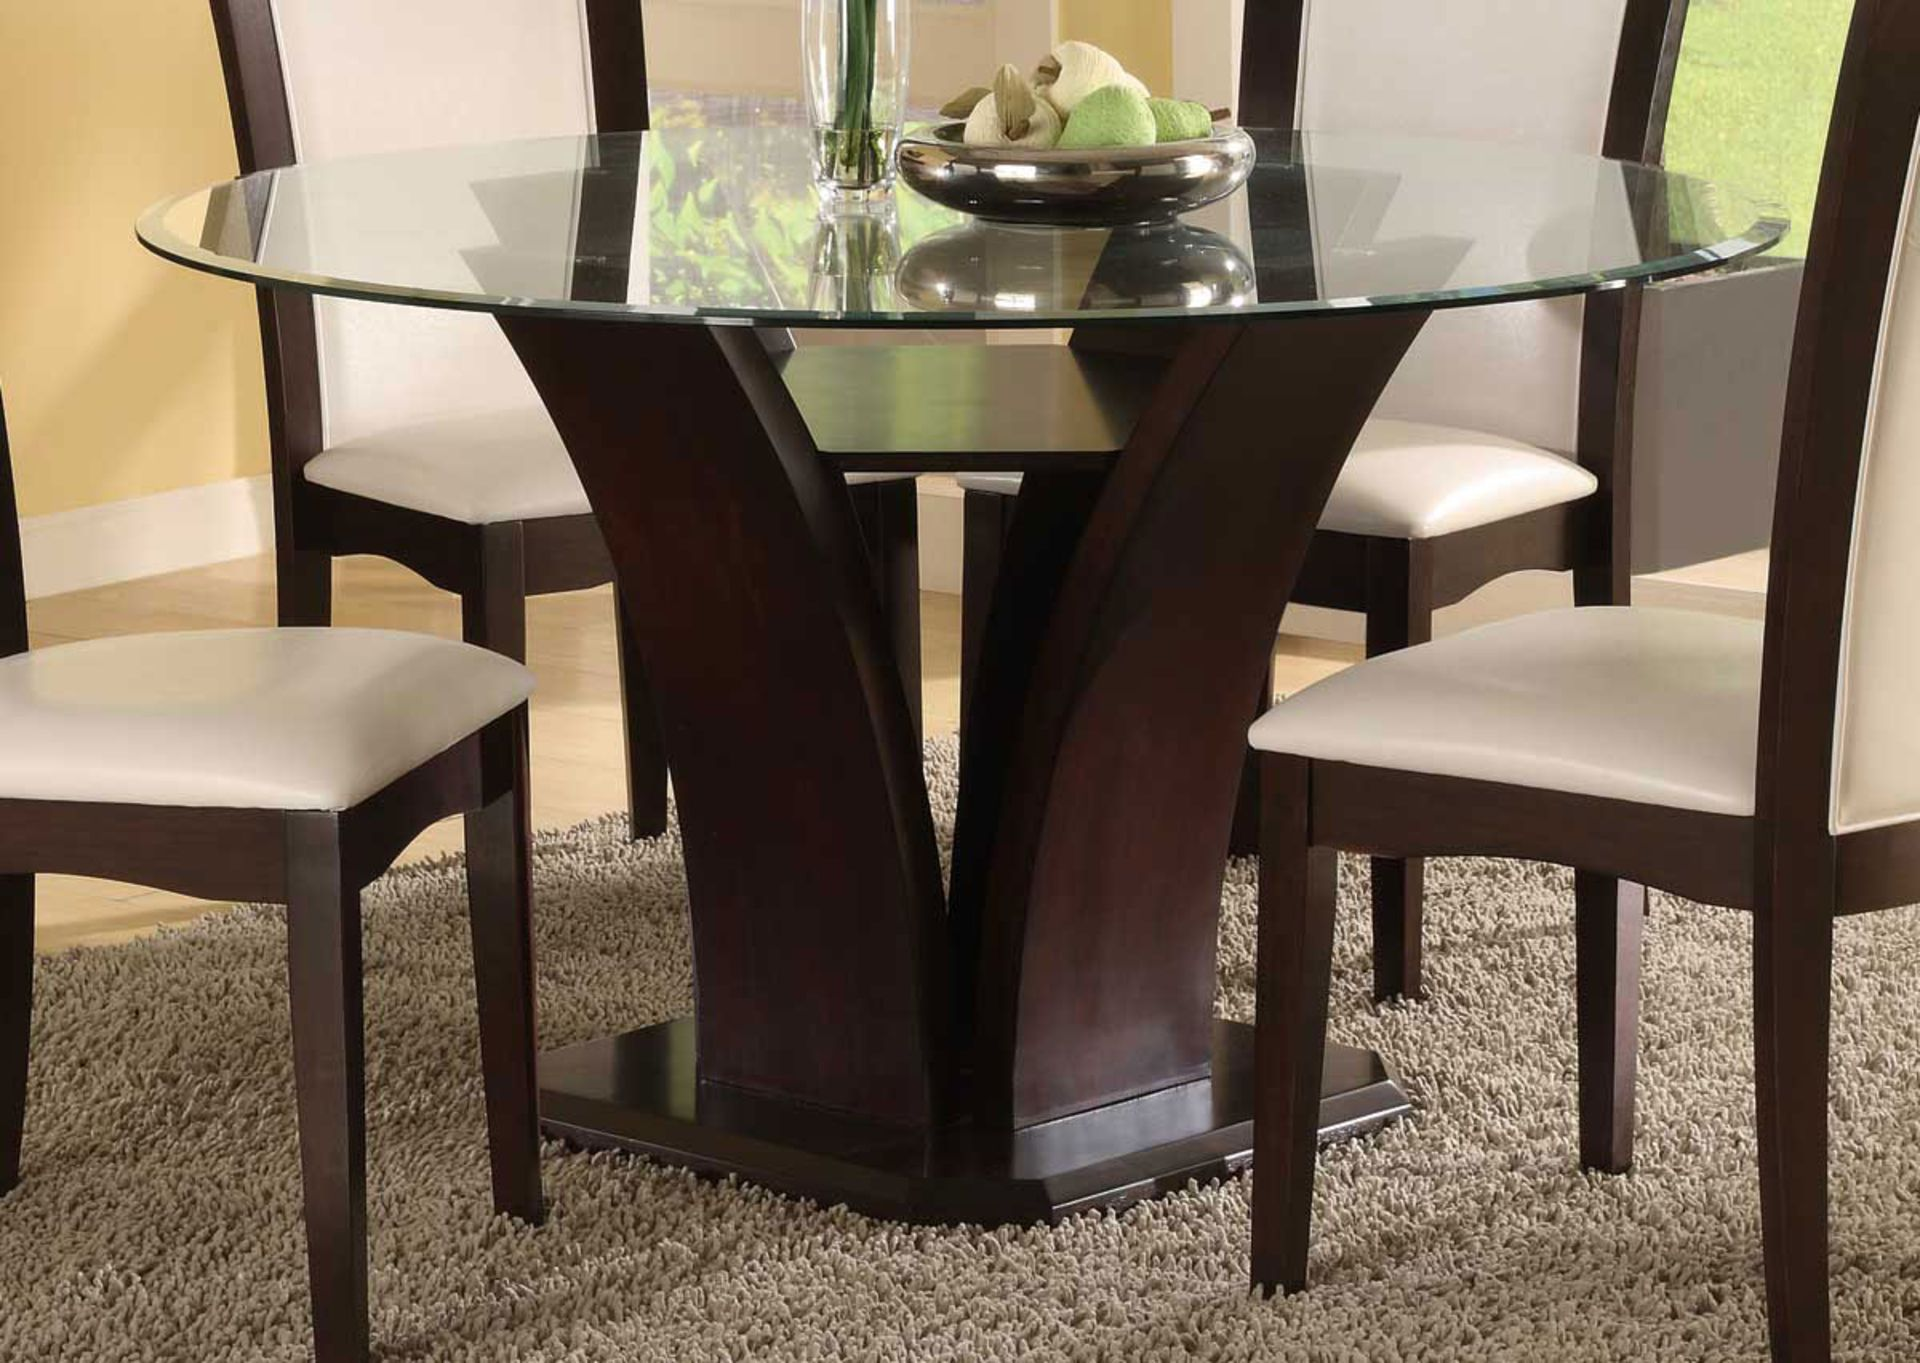 Elegant Design Of Modern Round Dining Table With Glass Top